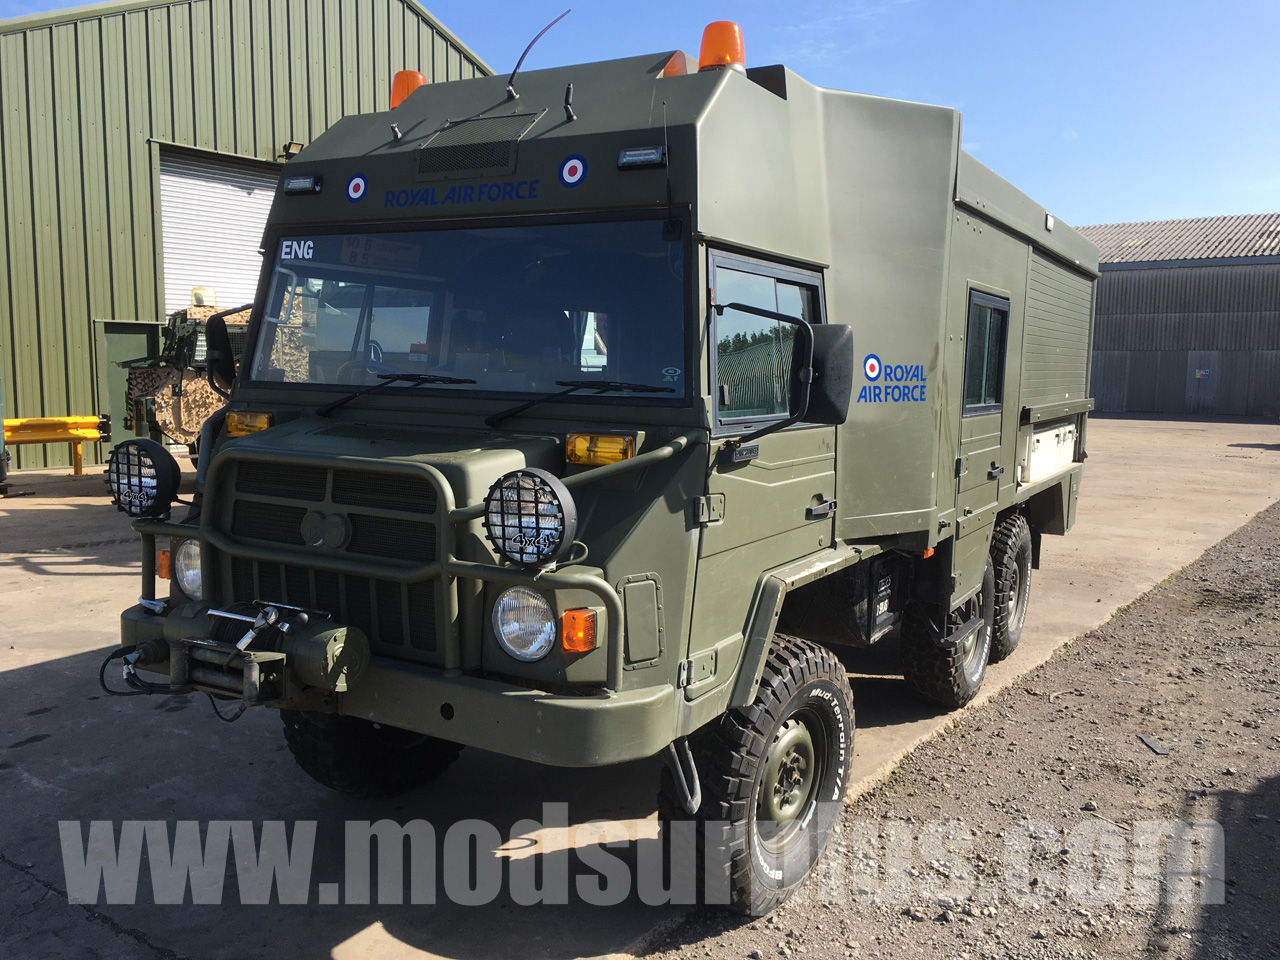 military vehicles for sale - Pinzgauer 718 MK 6x6 RHD Crew Cab Utility